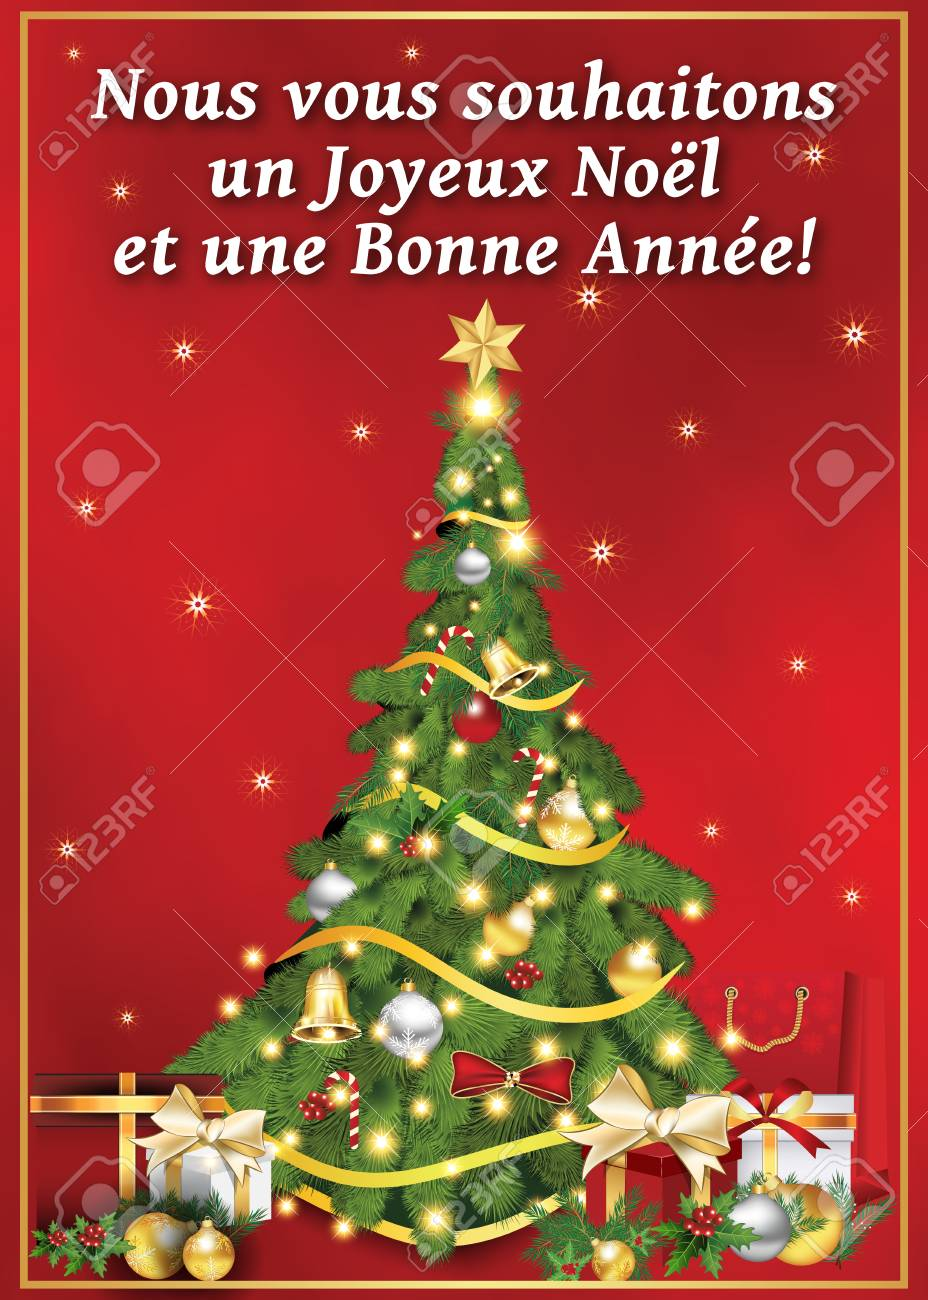 Photos De Joyeux Noel Et Bonne Annee.French Greeting Card For Winter Holiday Merry Christmas And